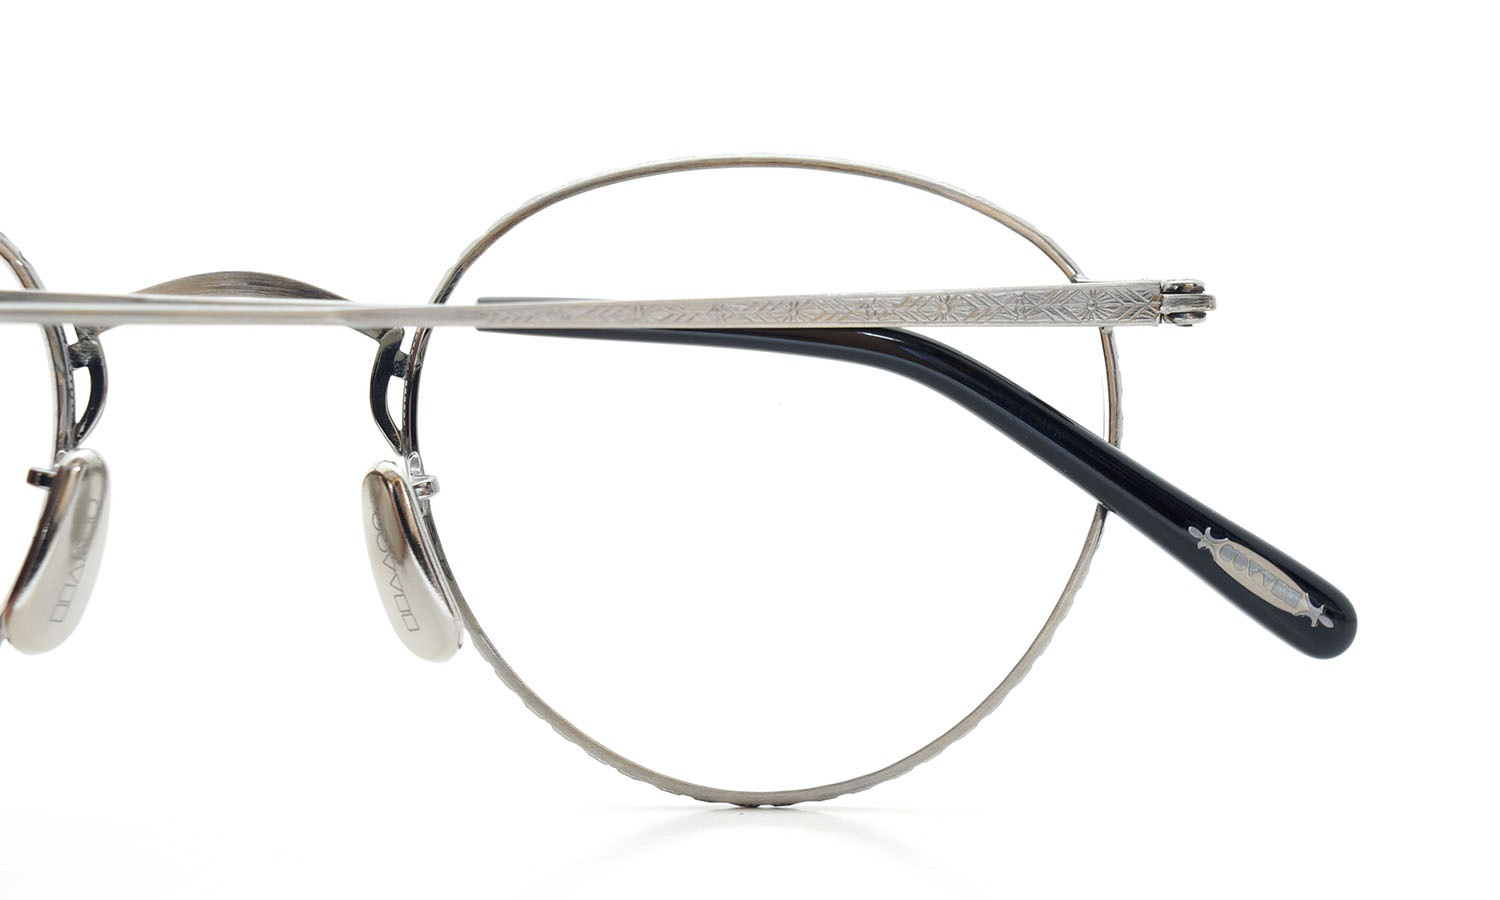 OLIVER PEOPLES (オリバーピープルズ) 2014年-2015秋冬 最新作メガネ OP-47T P ピューター 13